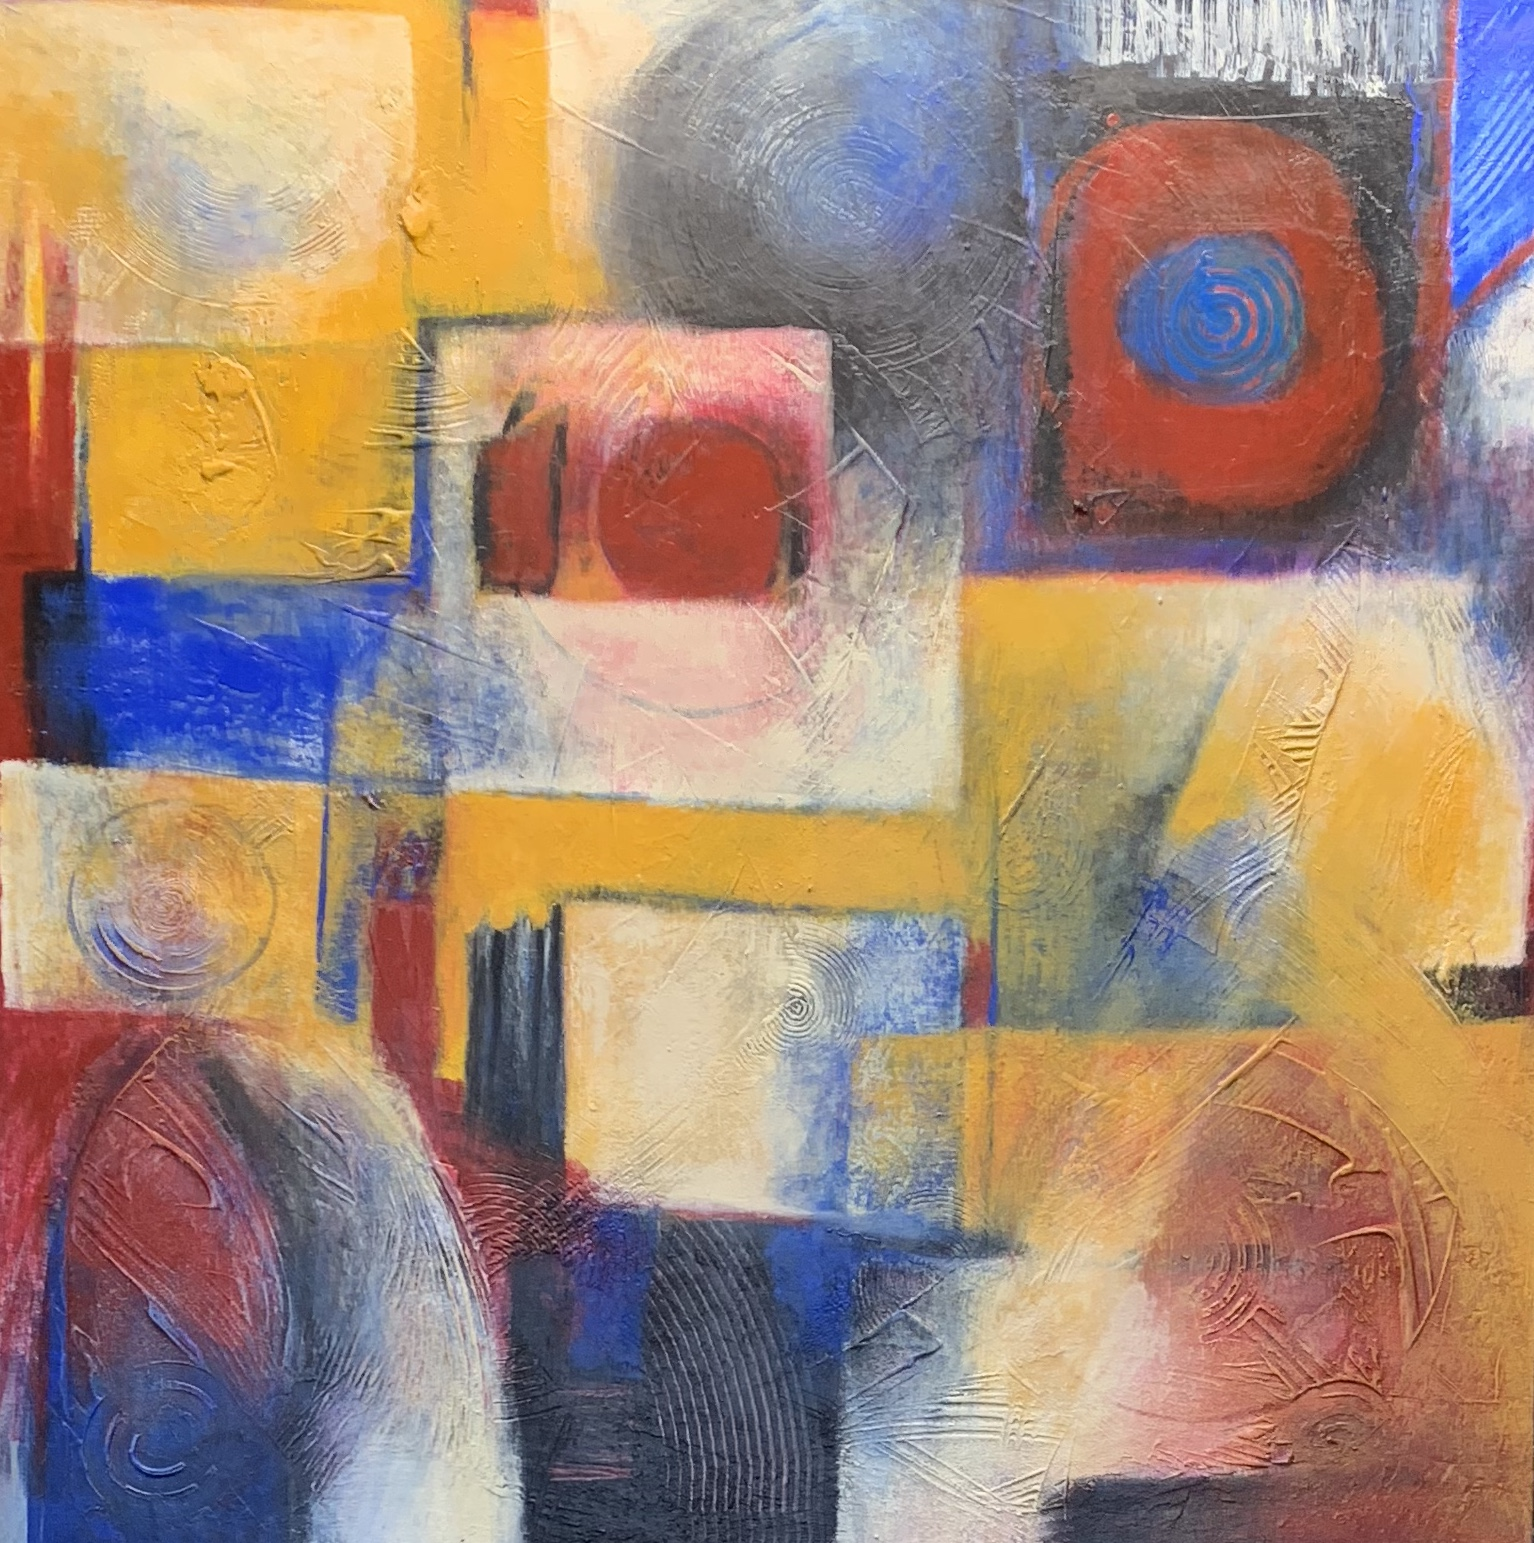 primary colors by Ulla Meyer | ArtworkNetwork.com